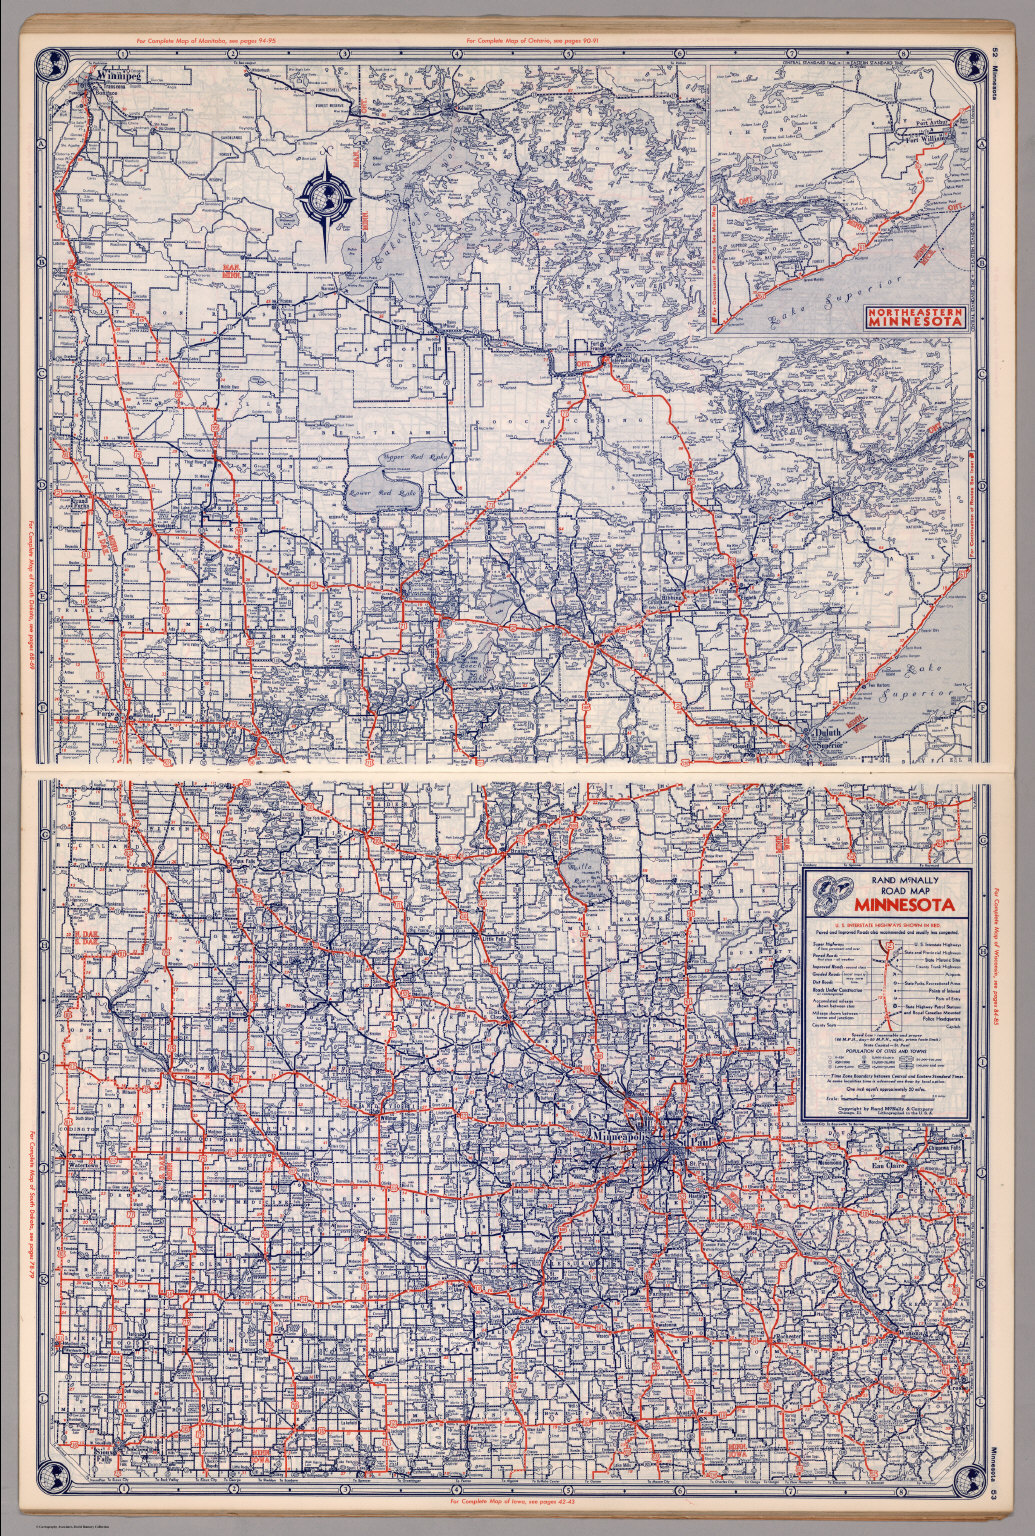 Road map of Minnesota - David Rumsey Historical Map Collection